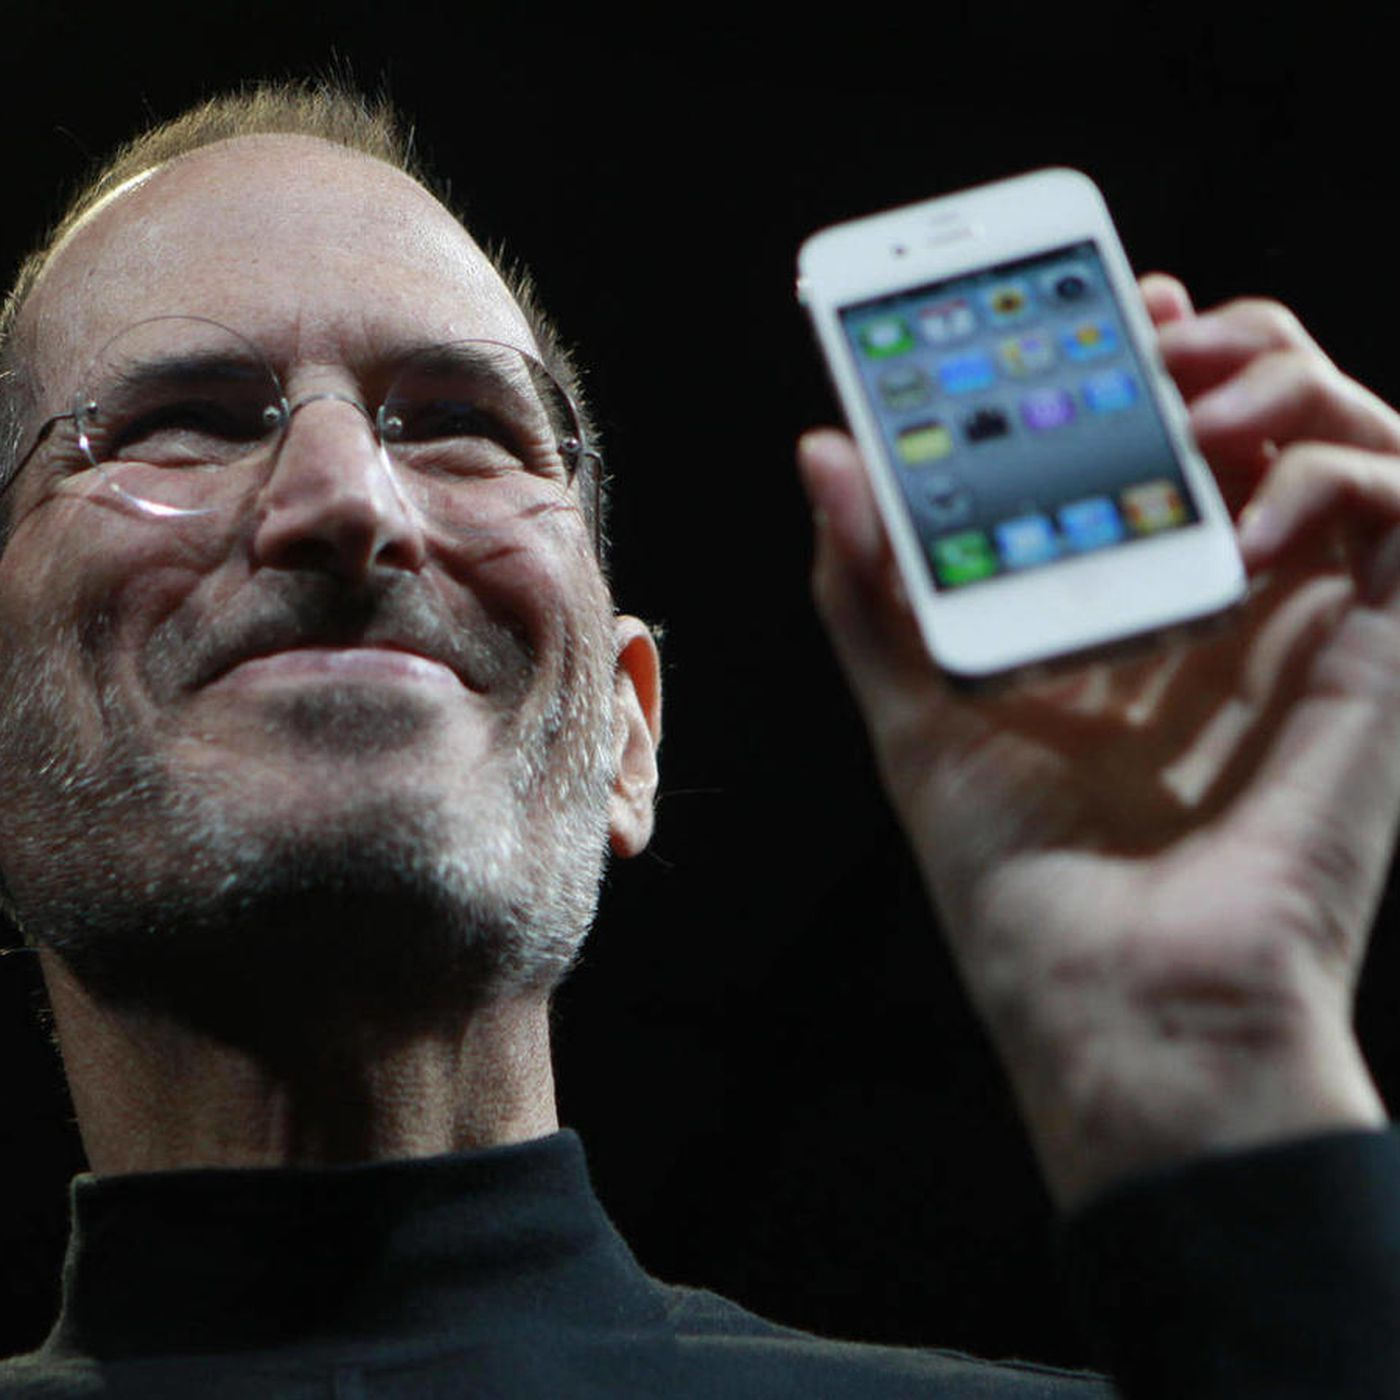 Terence Chea Author >> Apple Fans Company Is More Than Steve Jobs Deseret News